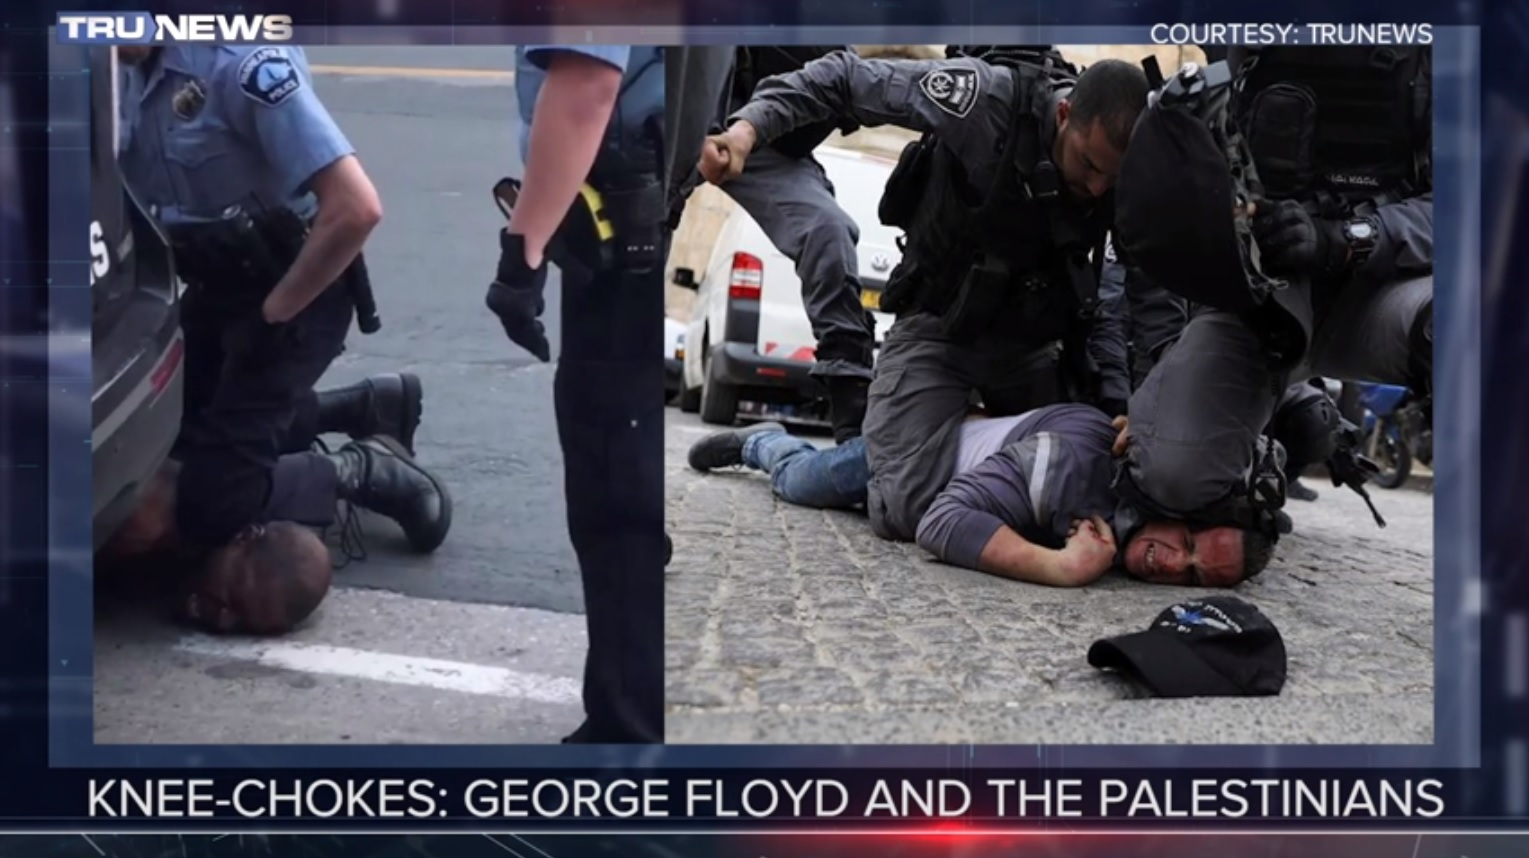 Photo Comparison Knee Choke Of George Floyd And Palestinians